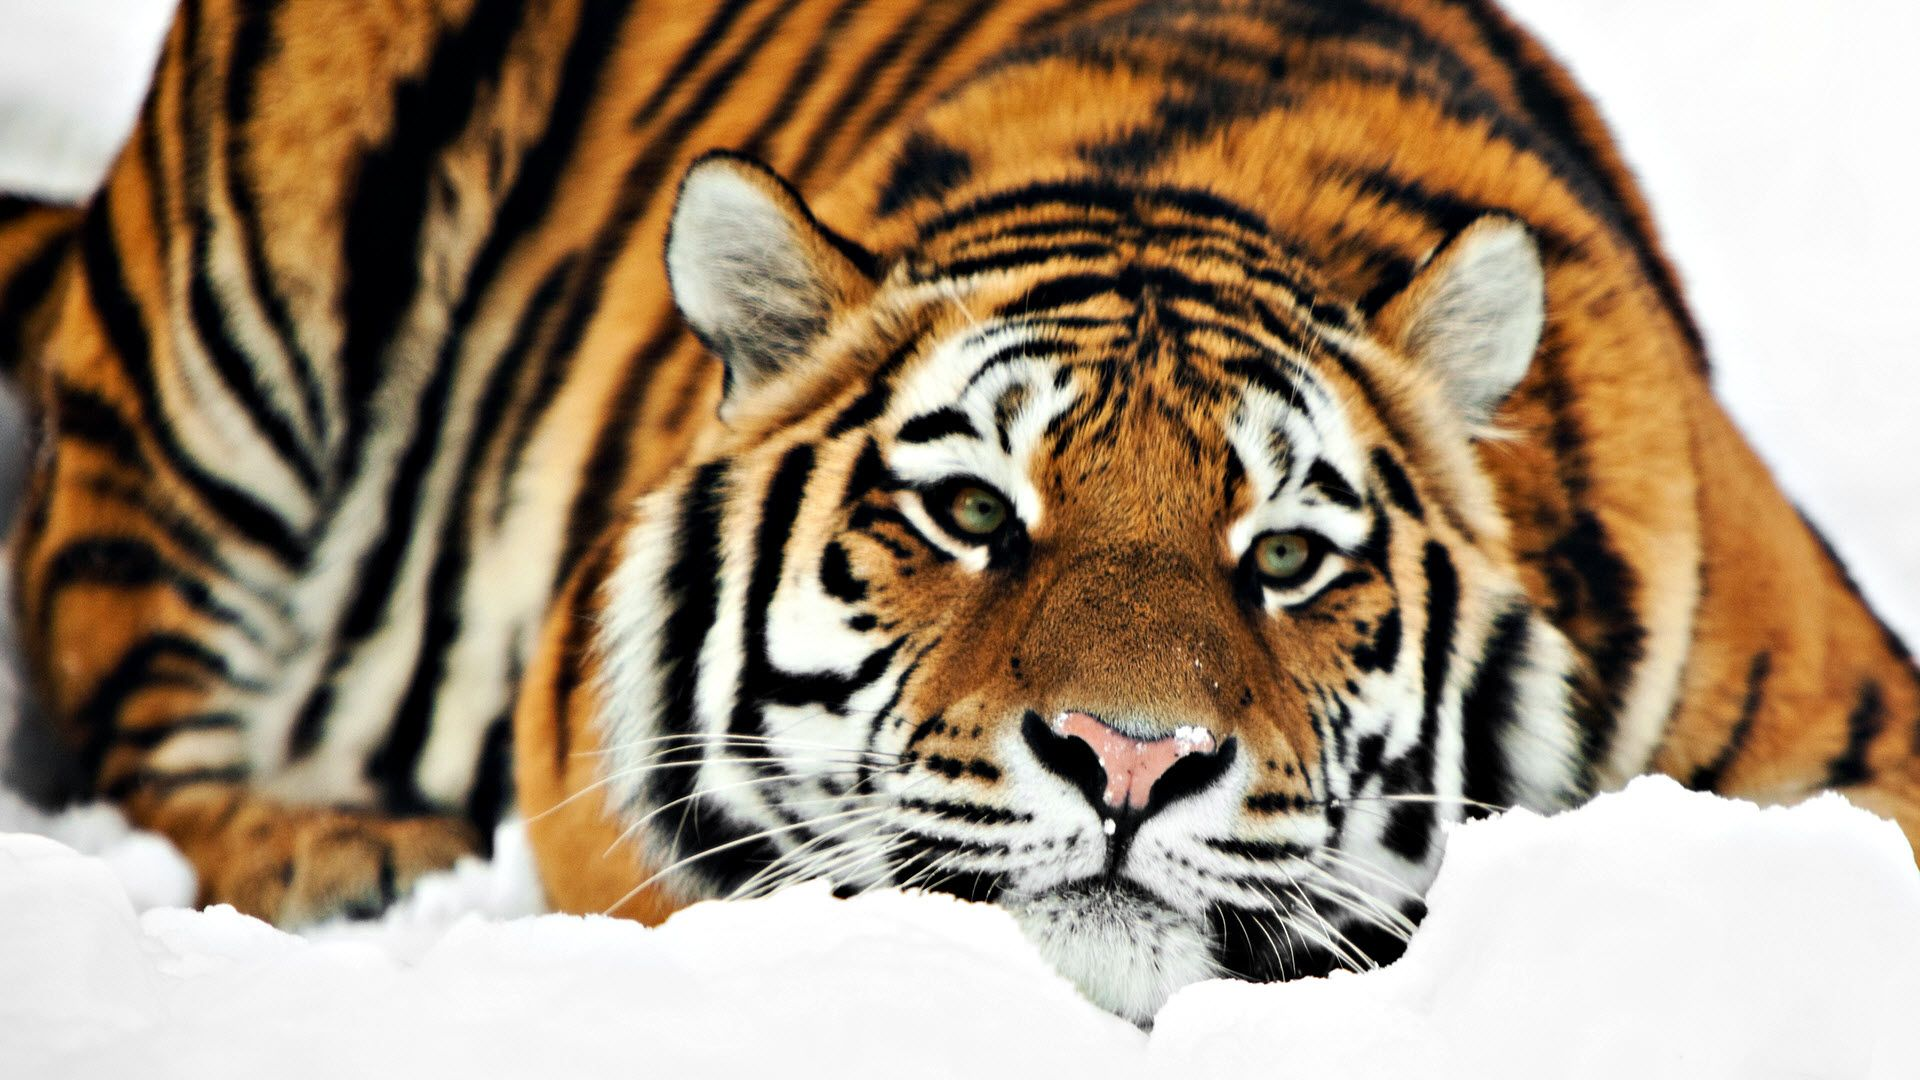 Tiger Hd 1080p Wallpapers Hd Wallpapers Tiger Pictures Pet Tiger Tiger Photography